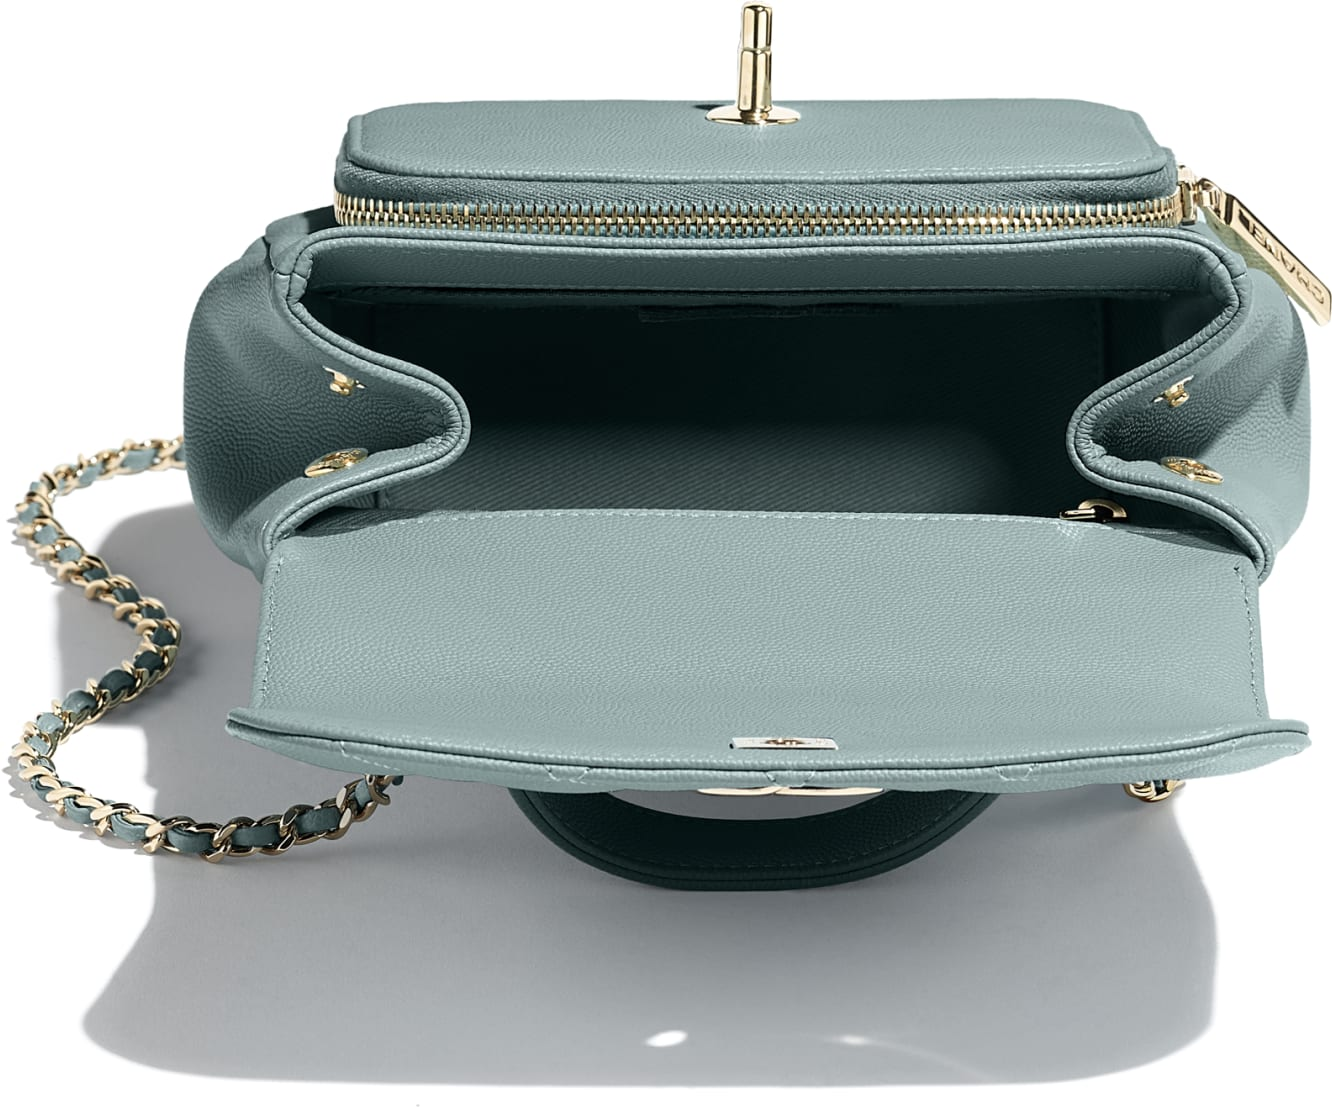 Small Flap Bag with Top Handle